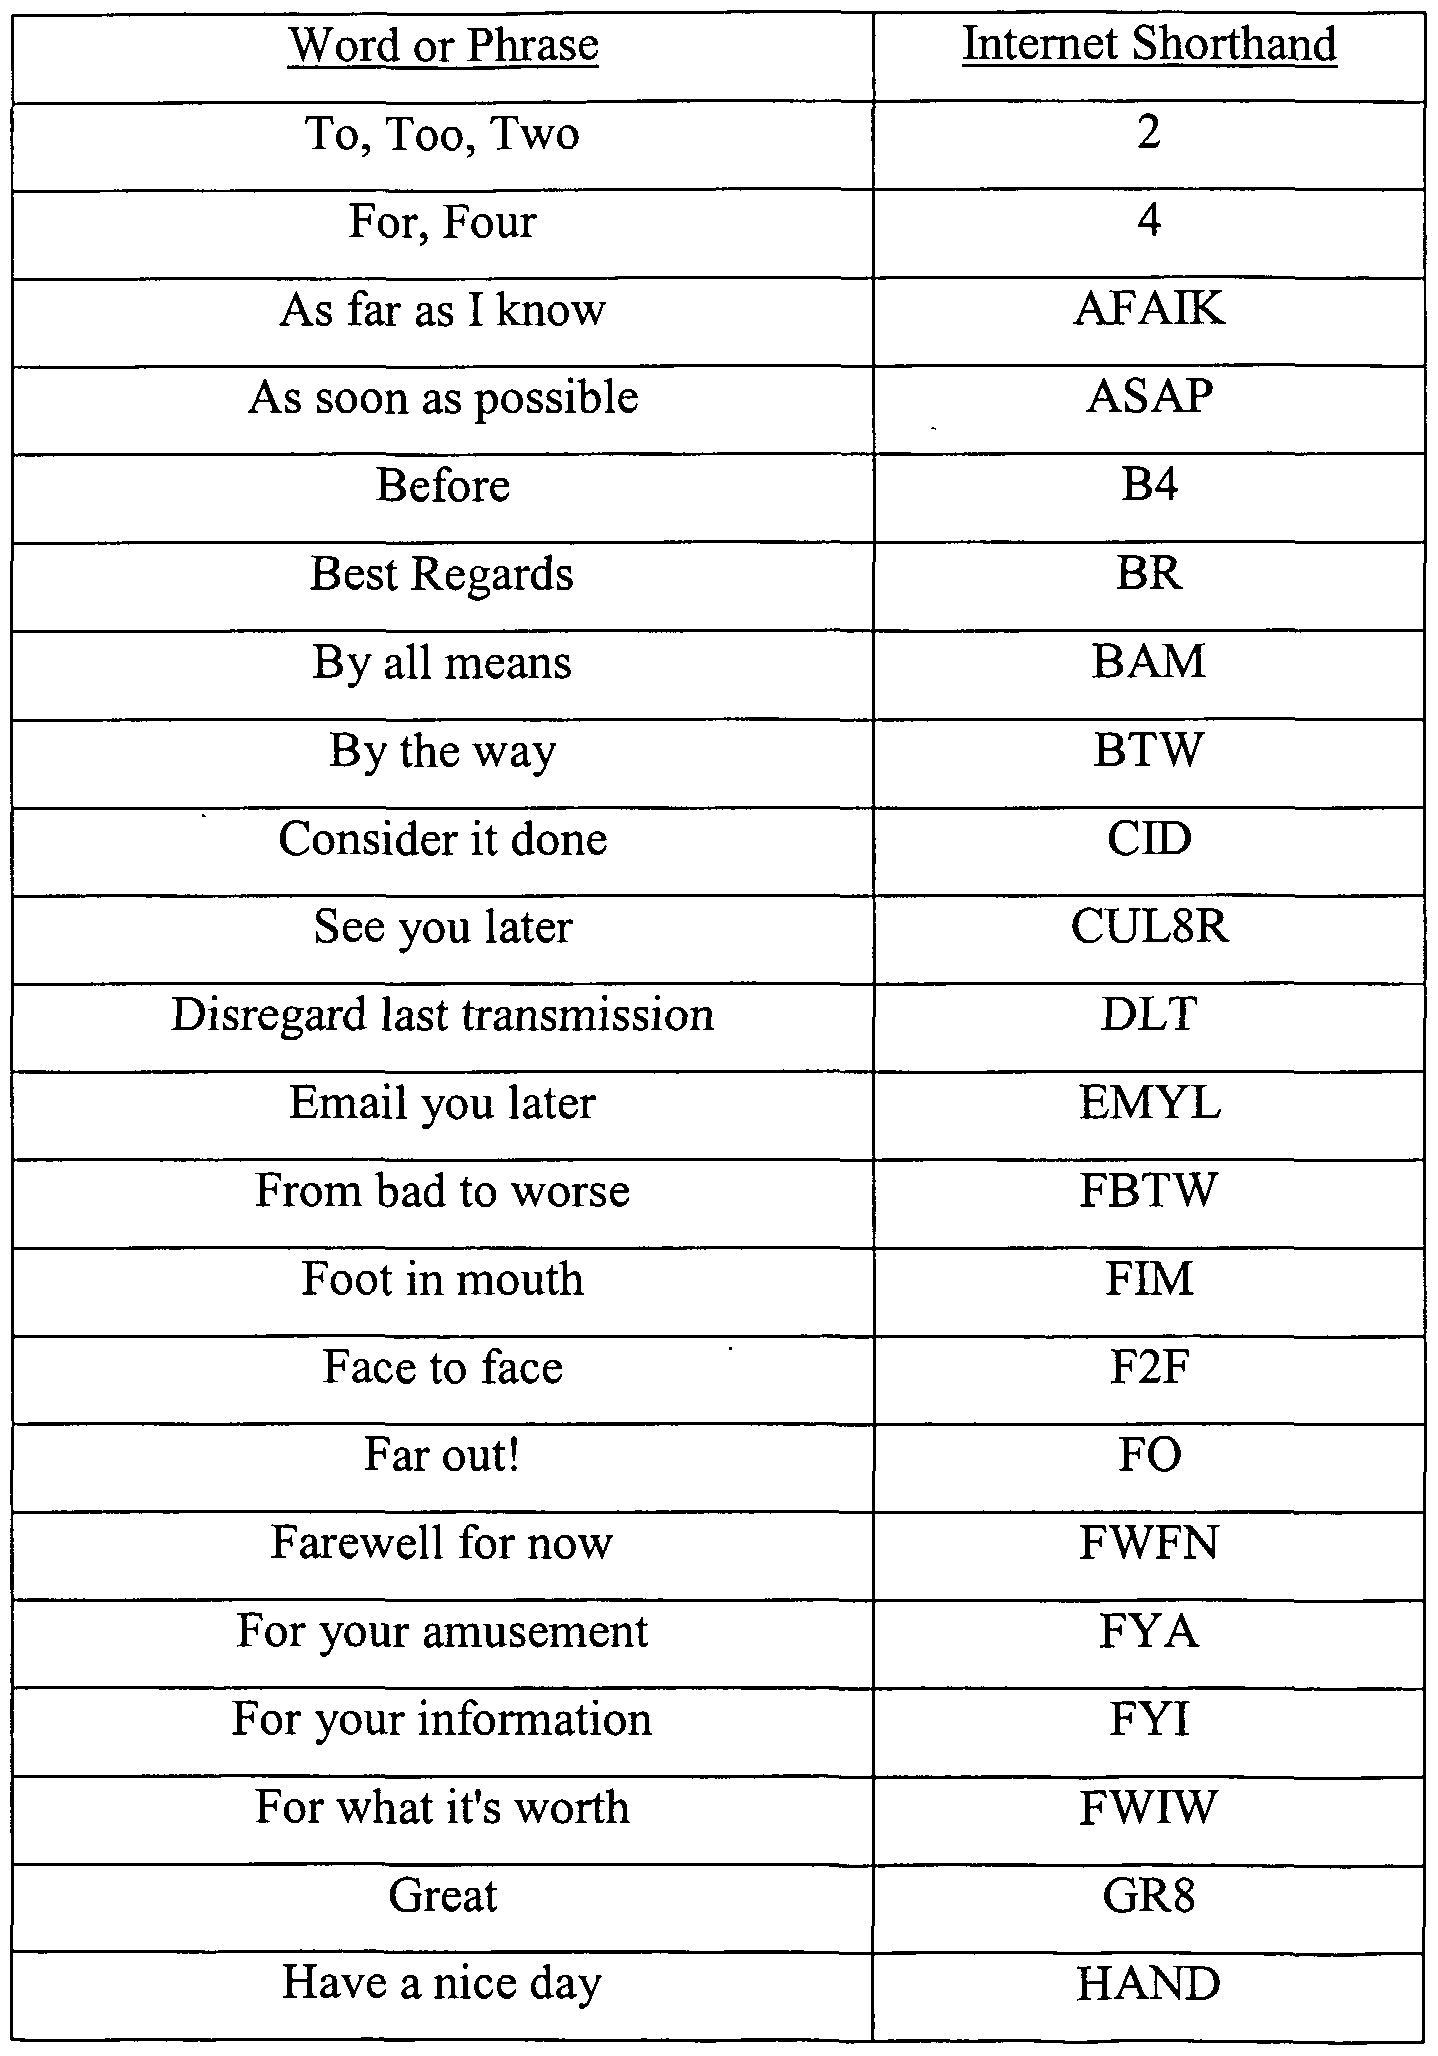 Text Shorthand Symbols